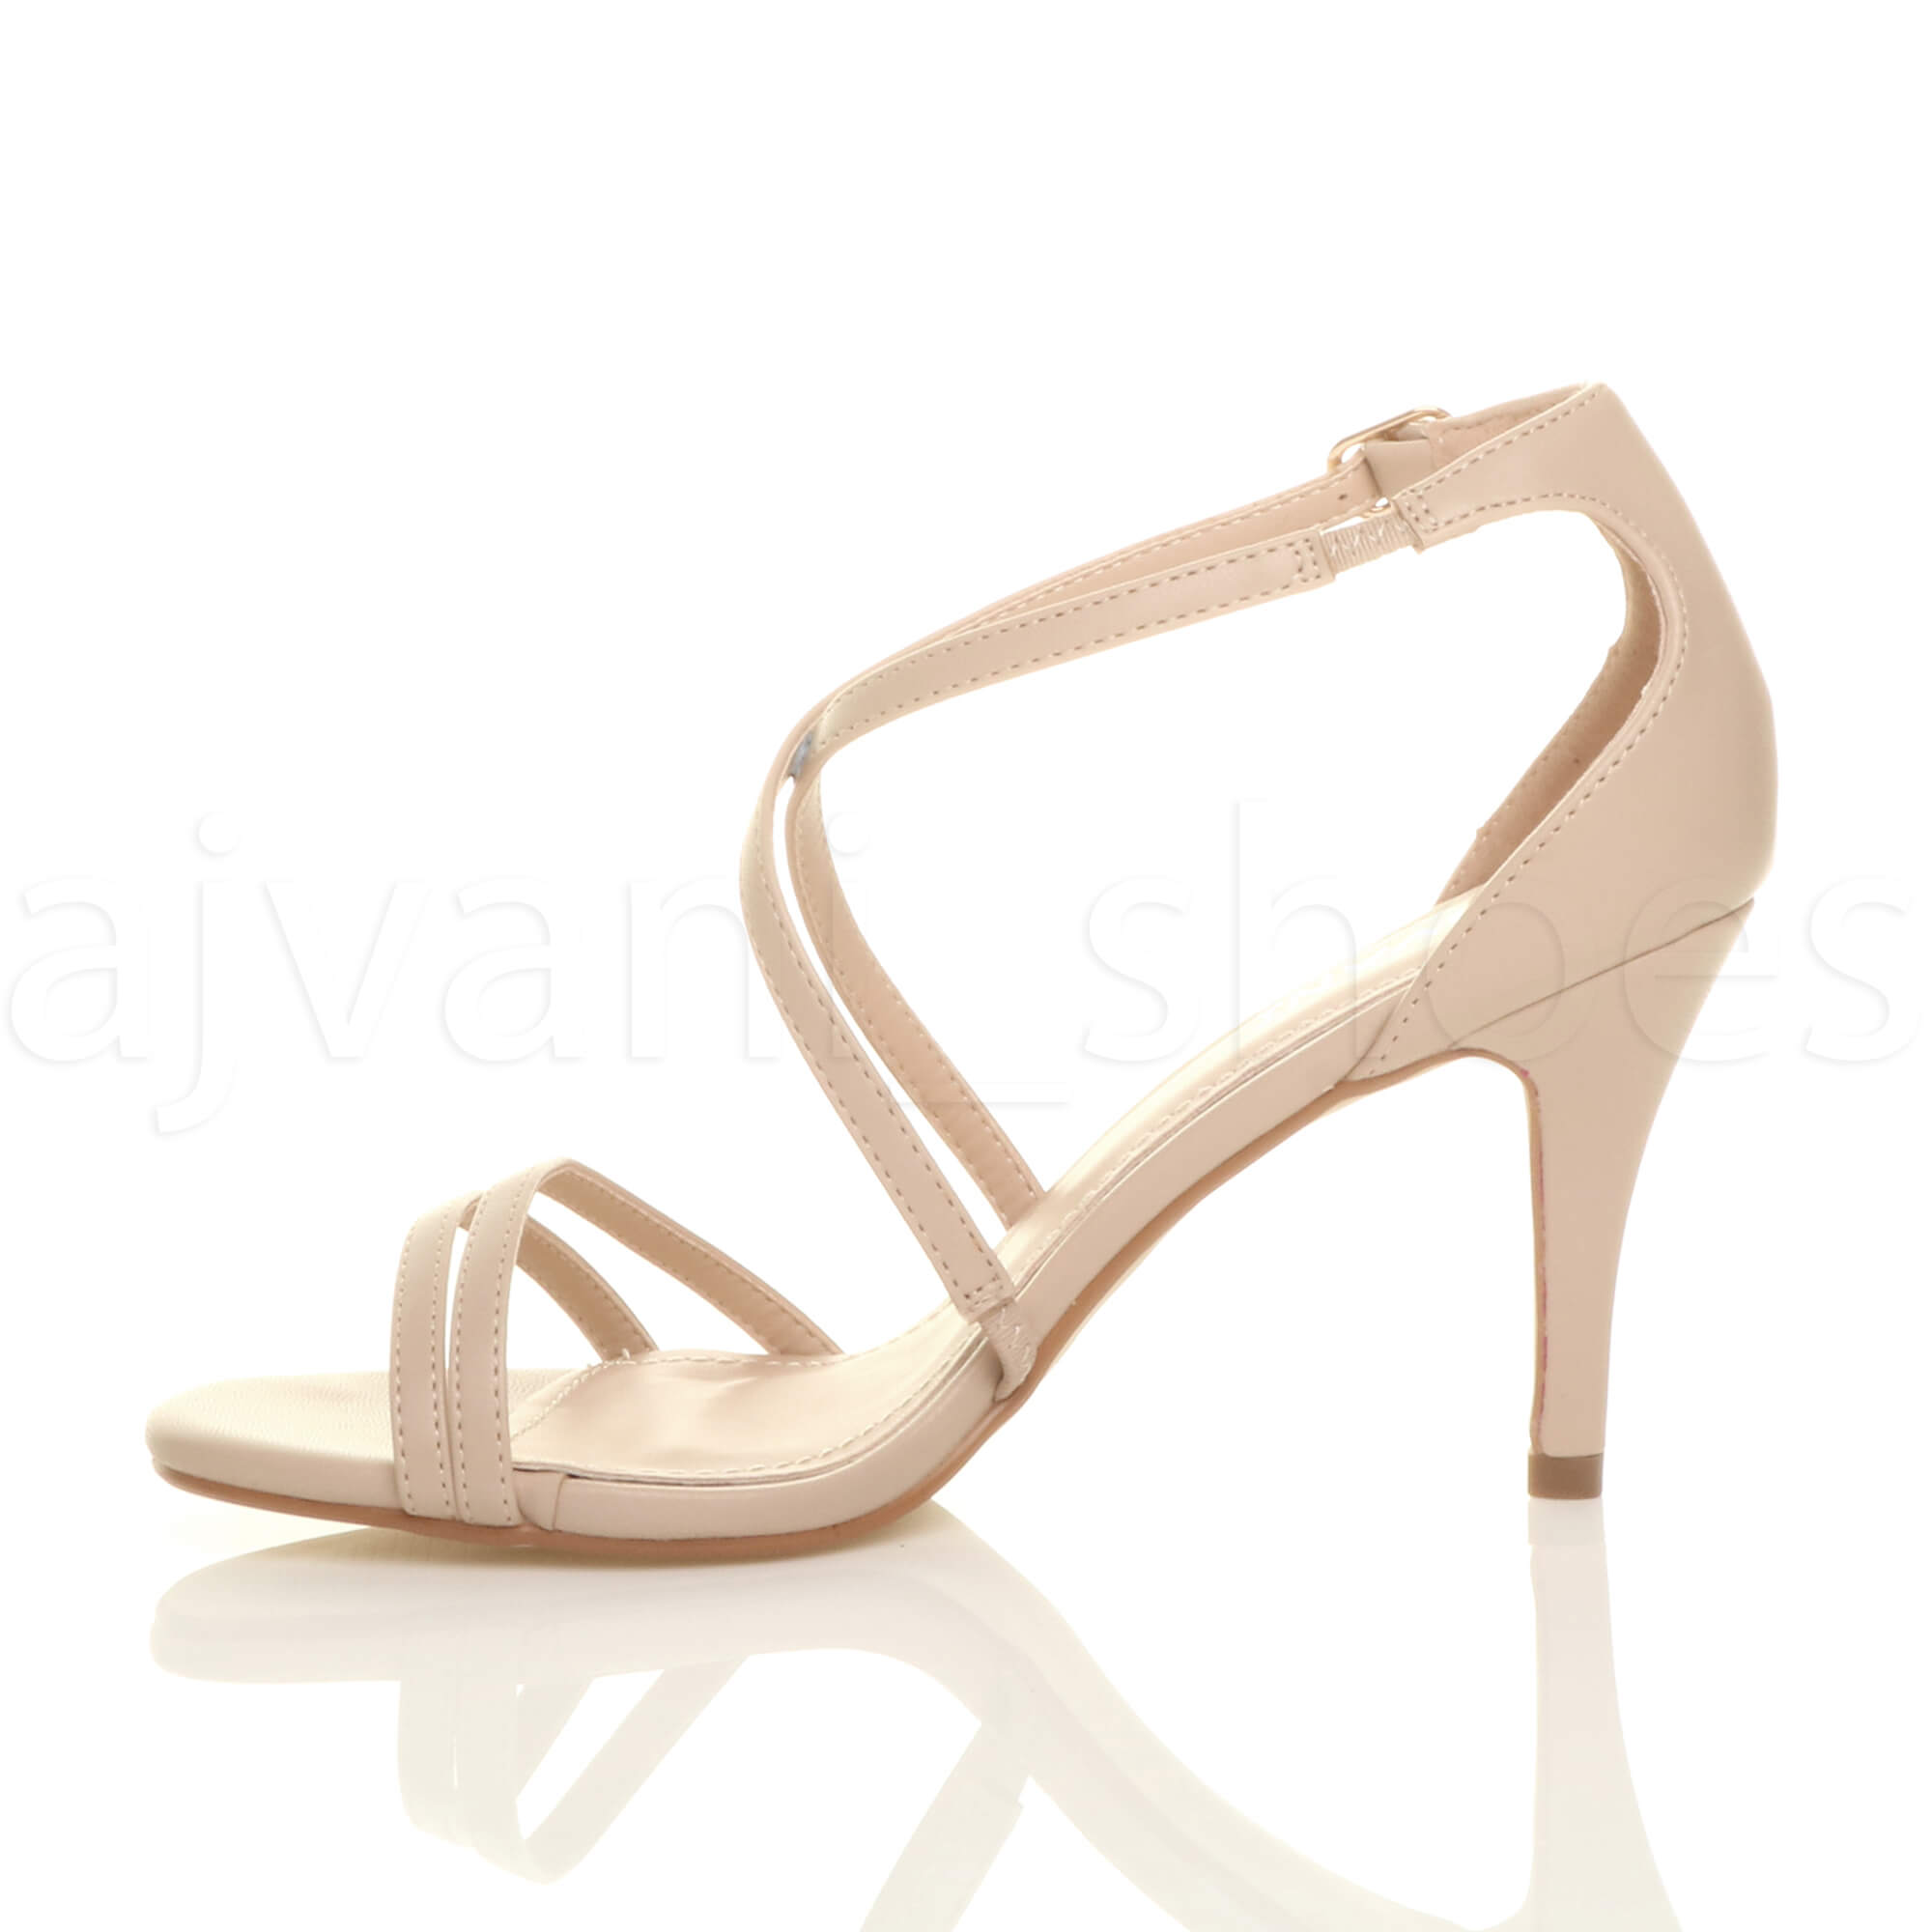 WOMENS-LADIES-MID-HIGH-HEEL-STRAPPY-CROSSOVER-WEDDING-PROM-SANDALS-SHOES-SIZE thumbnail 109